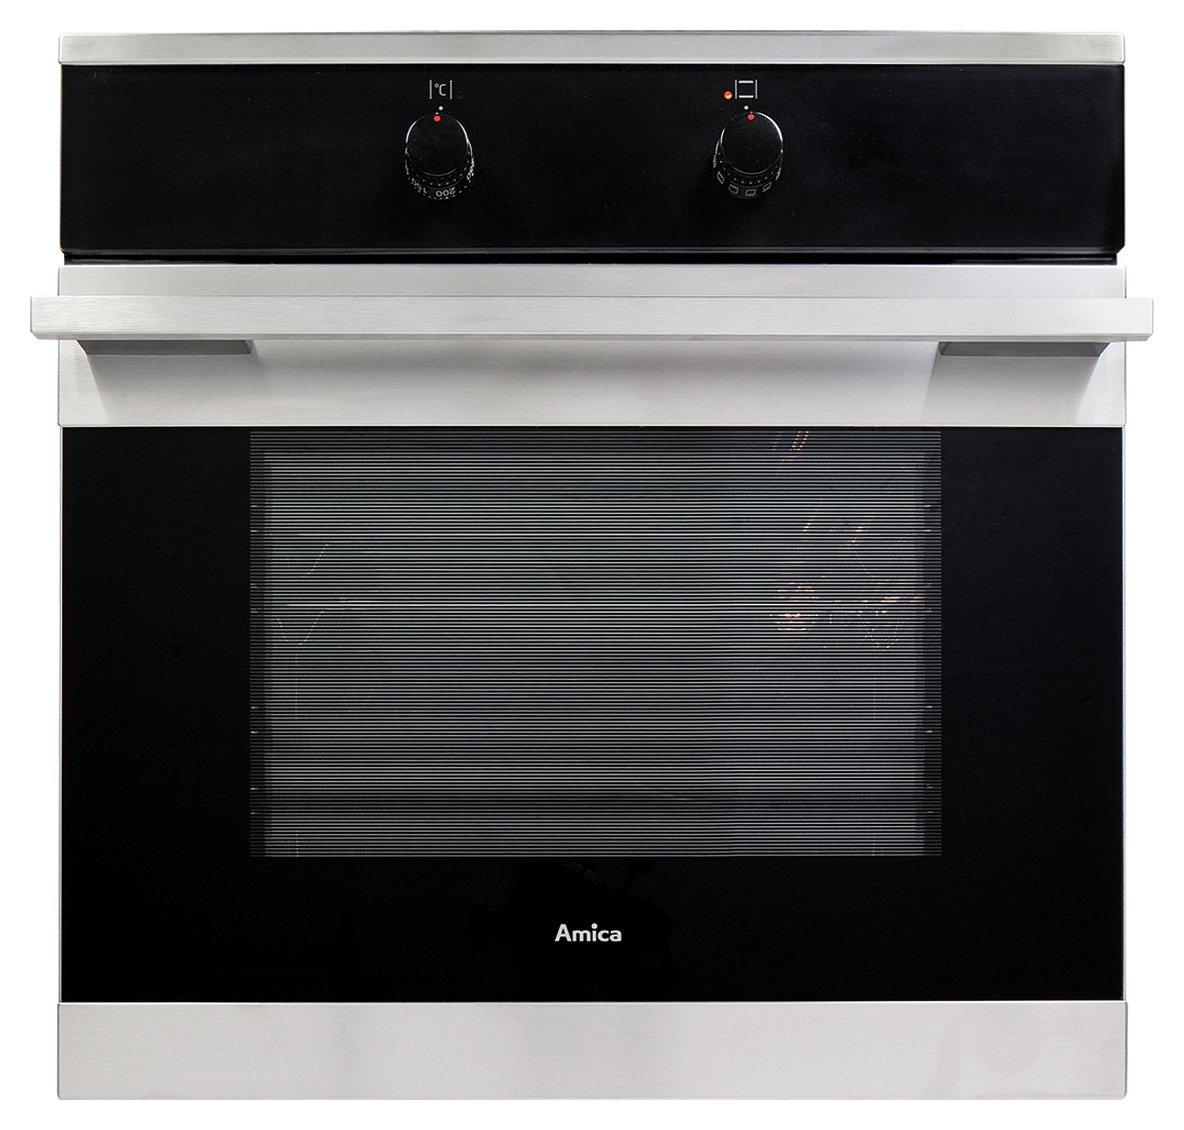 Image of Amica 10533X Built-In Oven - Stainless Steel.